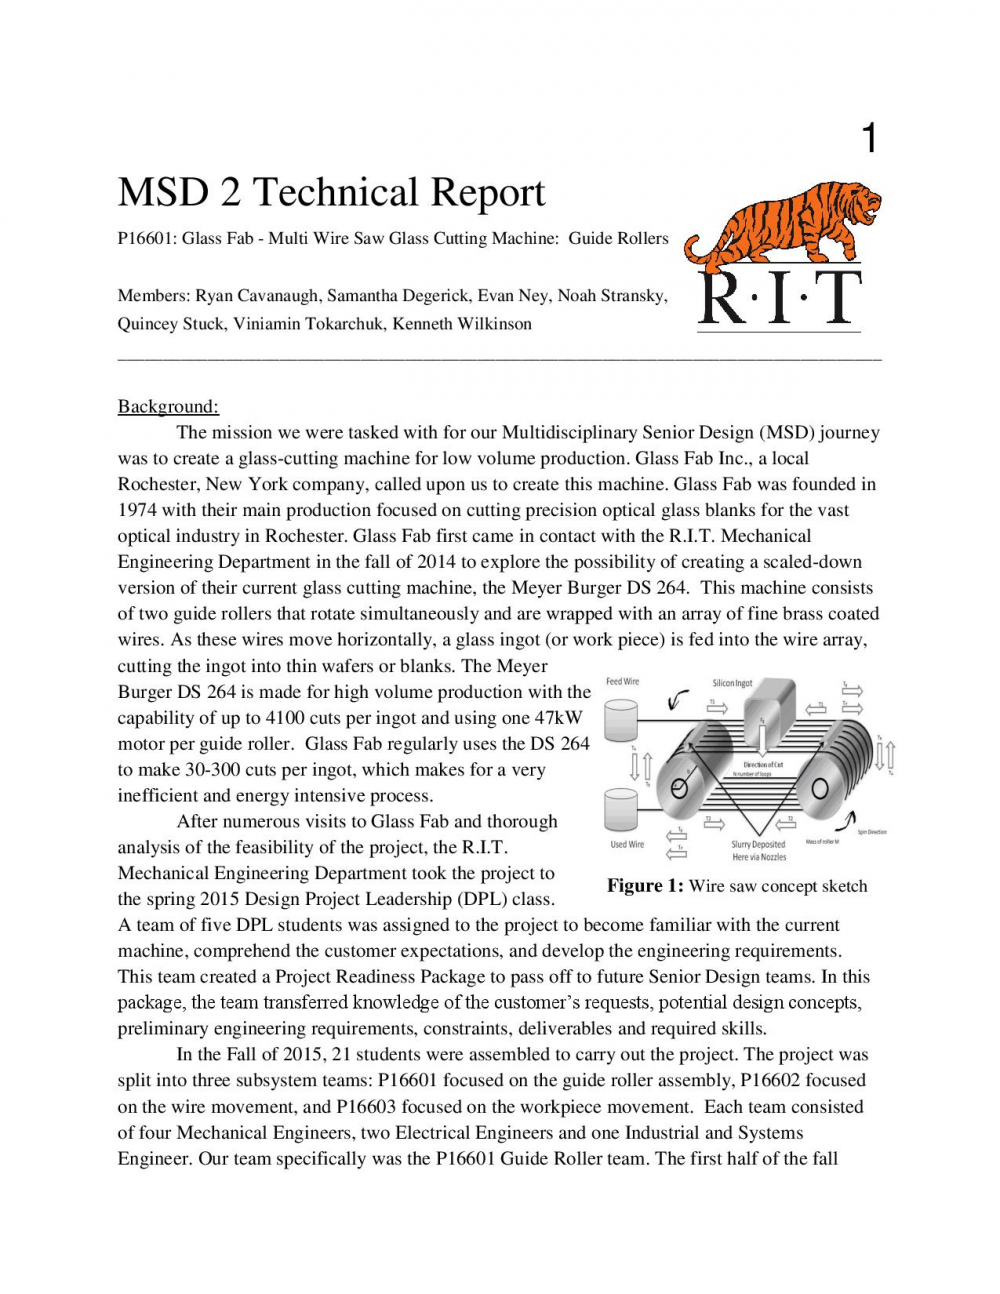 public/Final Technical Report/P16601 Final Technical Report-page-001.jpg